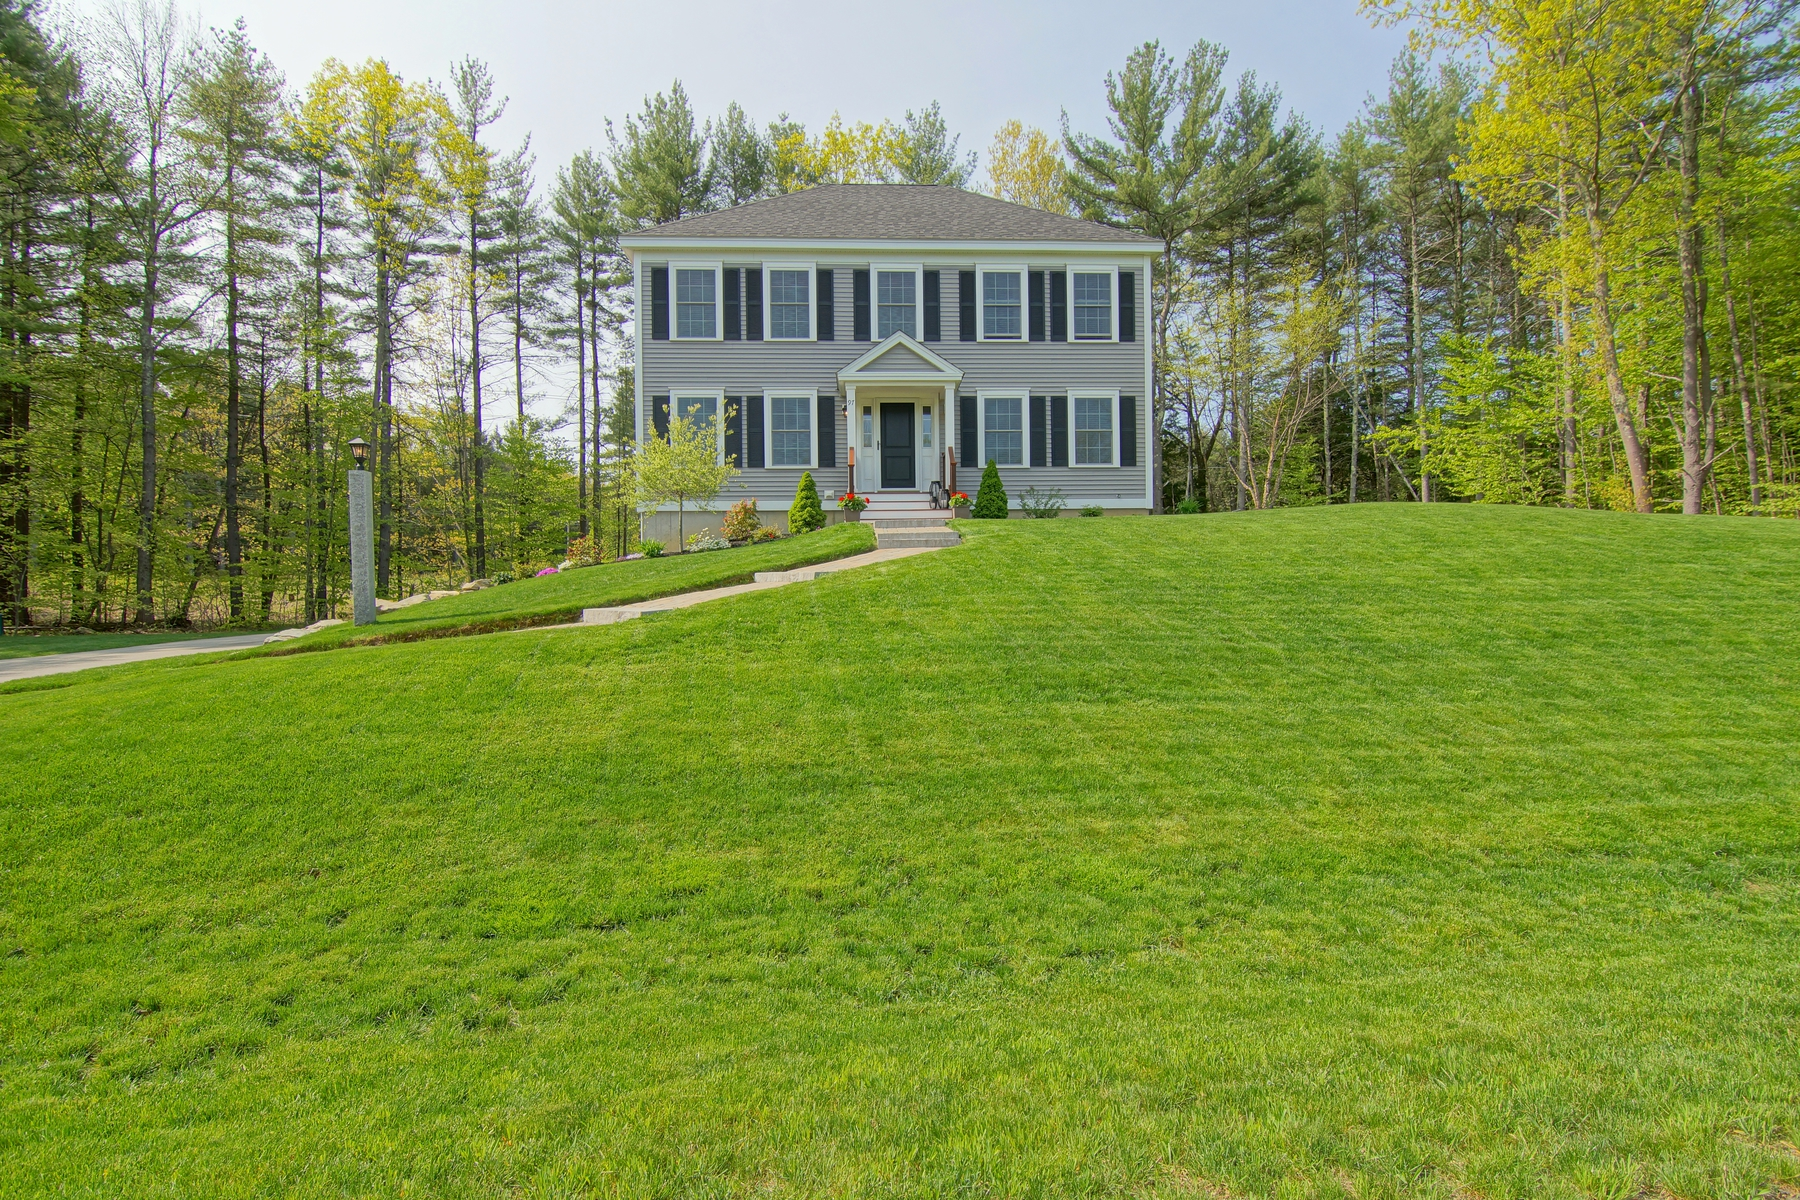 Single Family Home for Sale at Easy Living in this Charming Cul-de-Sac Neighborhood 97 Ridgecrest Drive Greenland, New Hampshire, 03840 United States